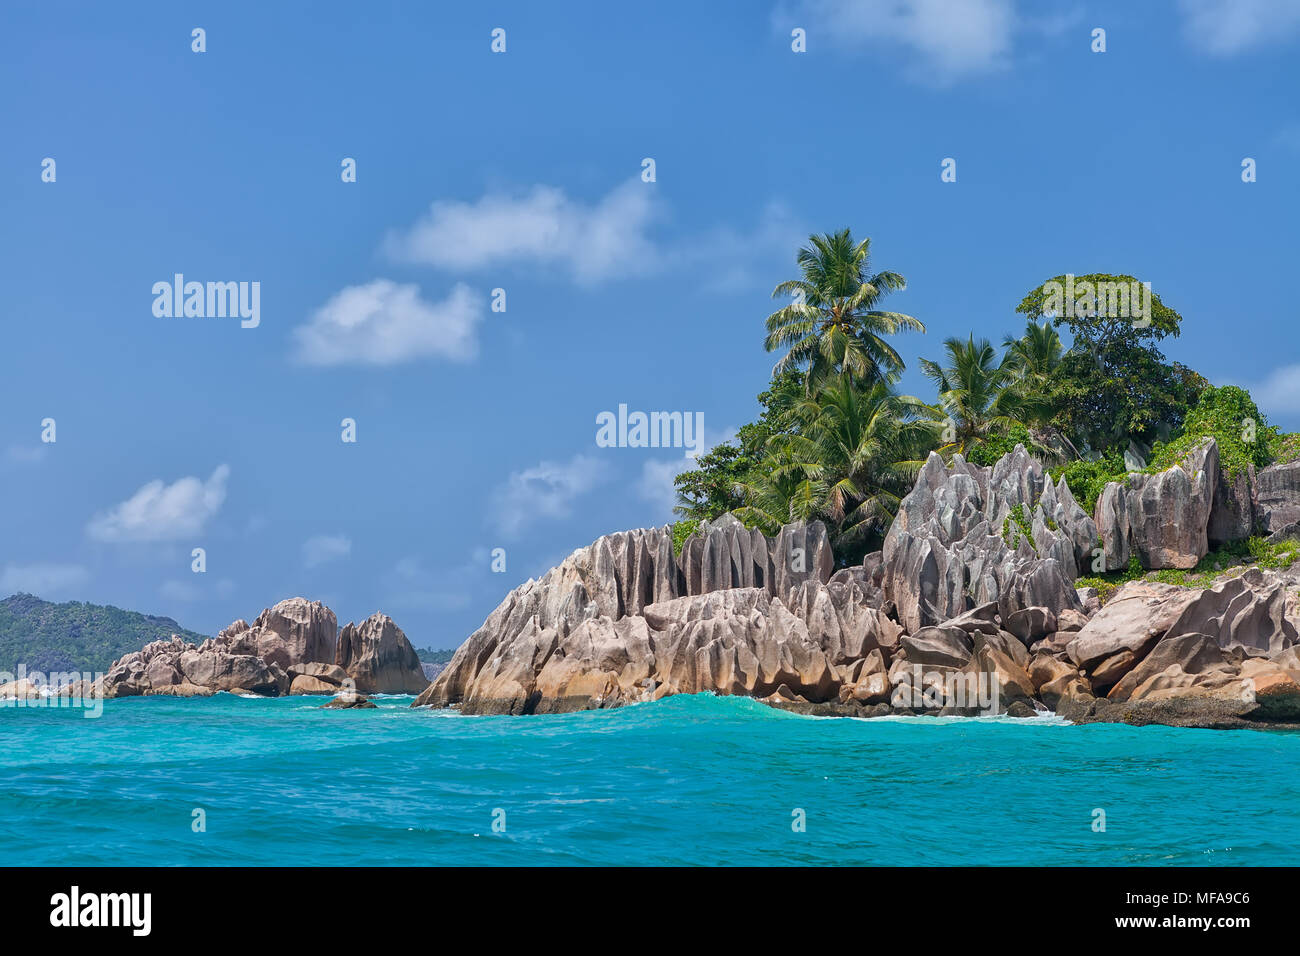 Belle Île Saint-pierre tropical, Seychelles Photo Stock